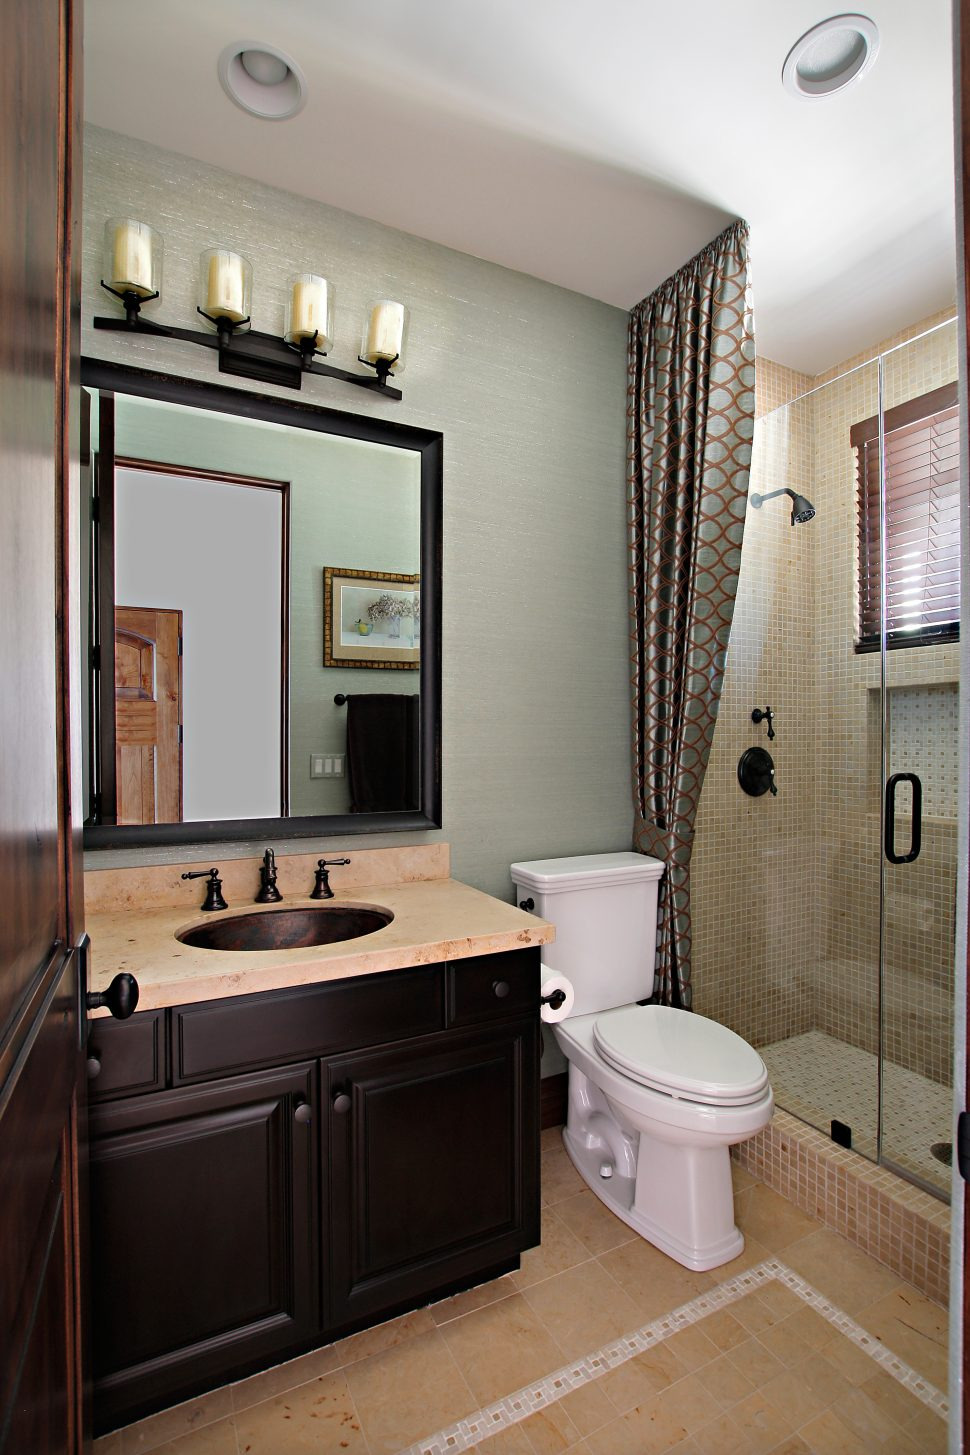 bathroom modern guest bathroom decorating ideas guest toilet and excerpt decorations bathroom photo decorating bathroom 970x1455